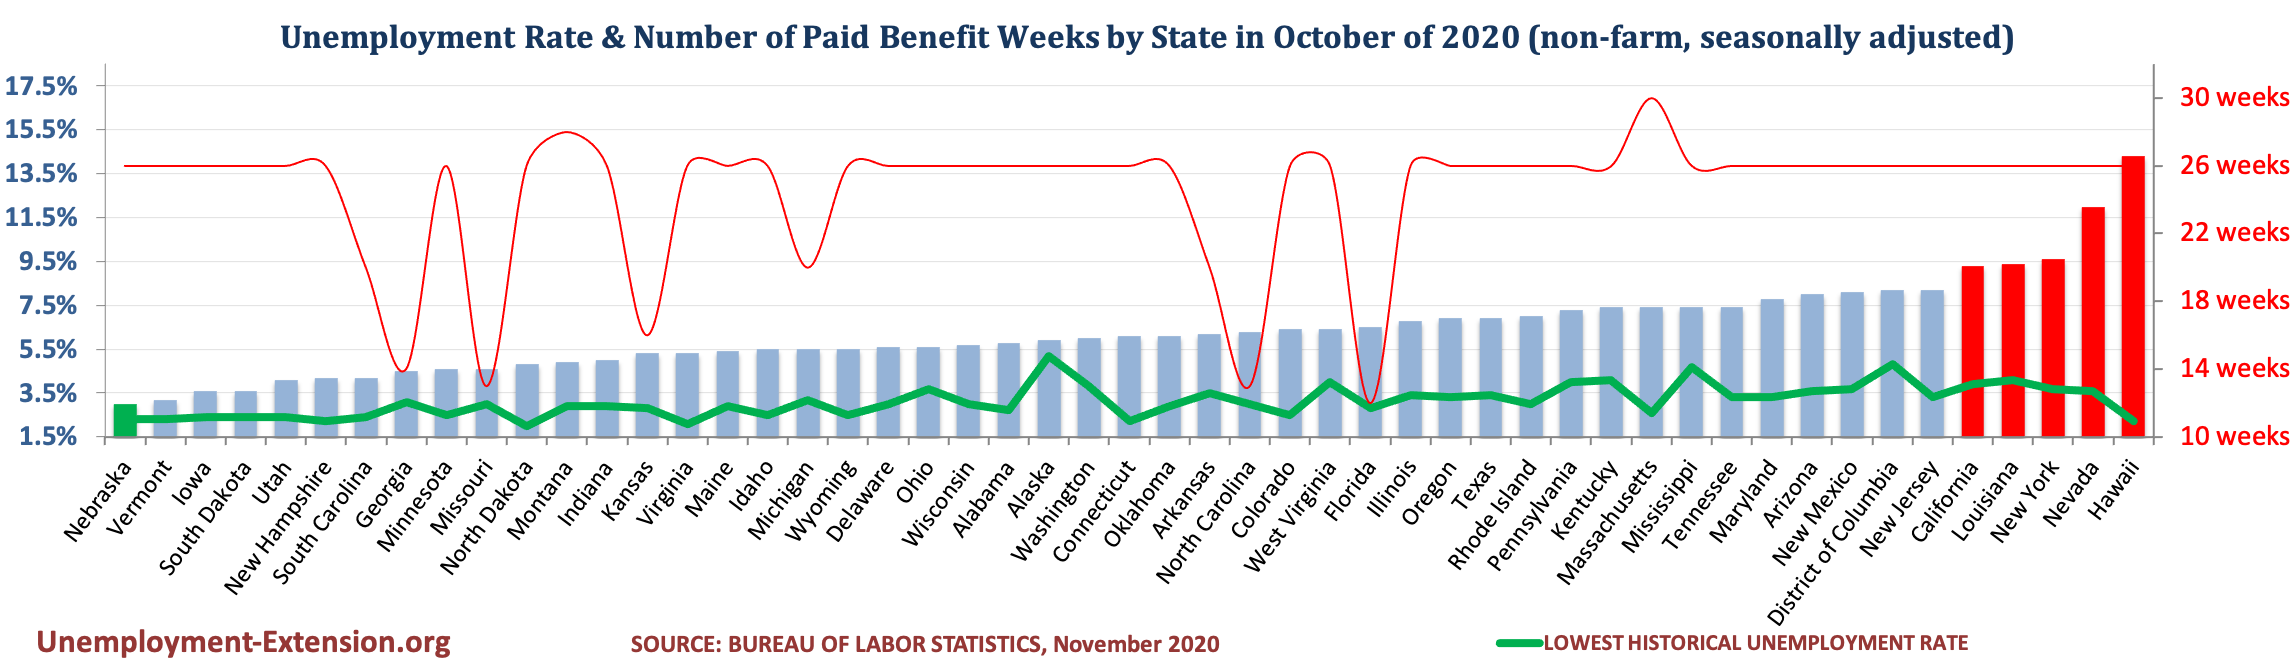 Unemployment Rate and Number of Paid Unemployment Benefit weeks by State (non-farm, seasonally adjusted) in December 2020